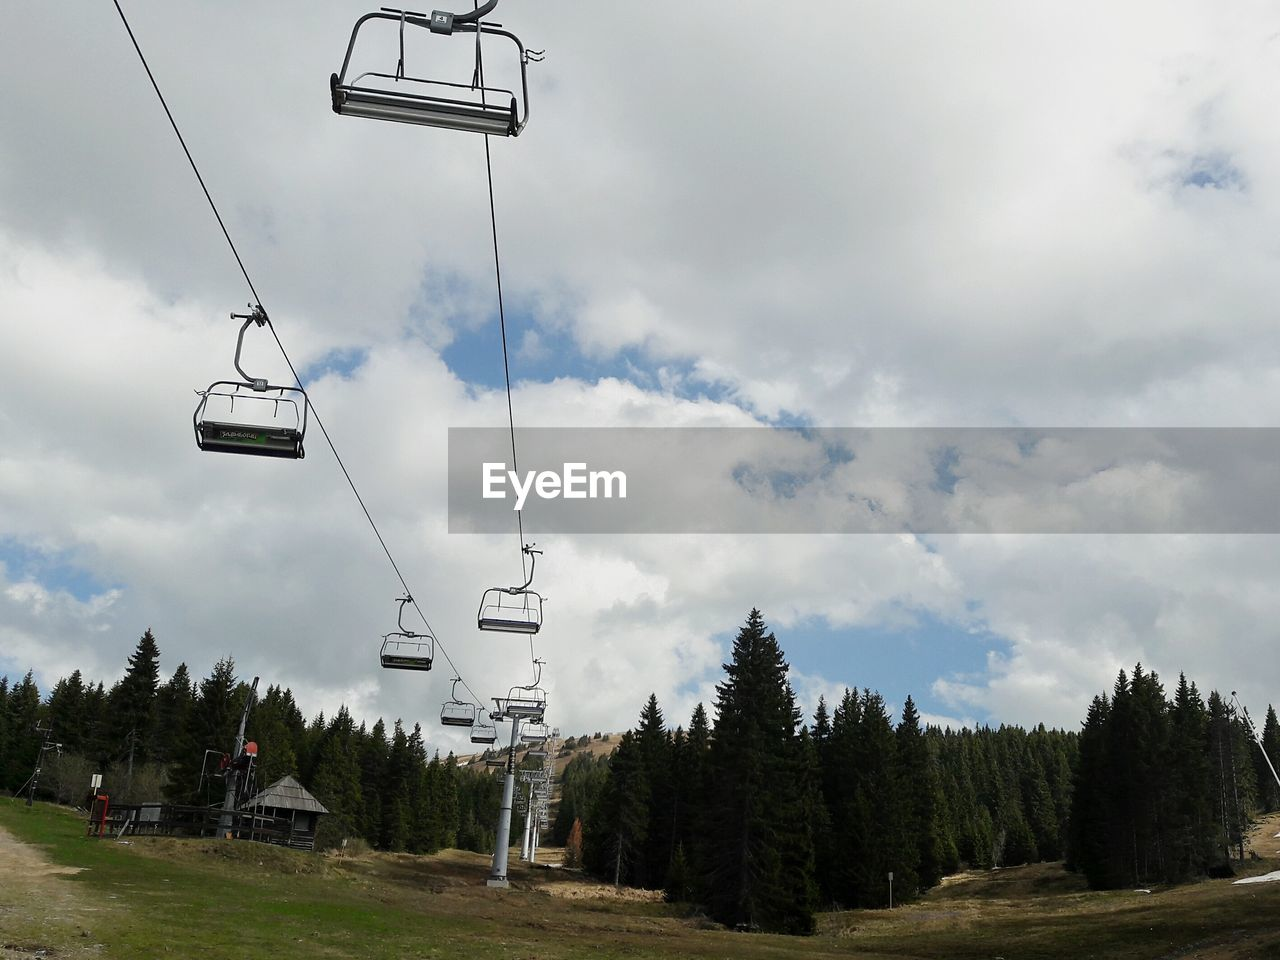 sky, cloud - sky, cable car, tree, ski lift, overhead cable car, plant, nature, transportation, day, mode of transportation, scenics - nature, beauty in nature, land, no people, outdoors, travel, non-urban scene, field